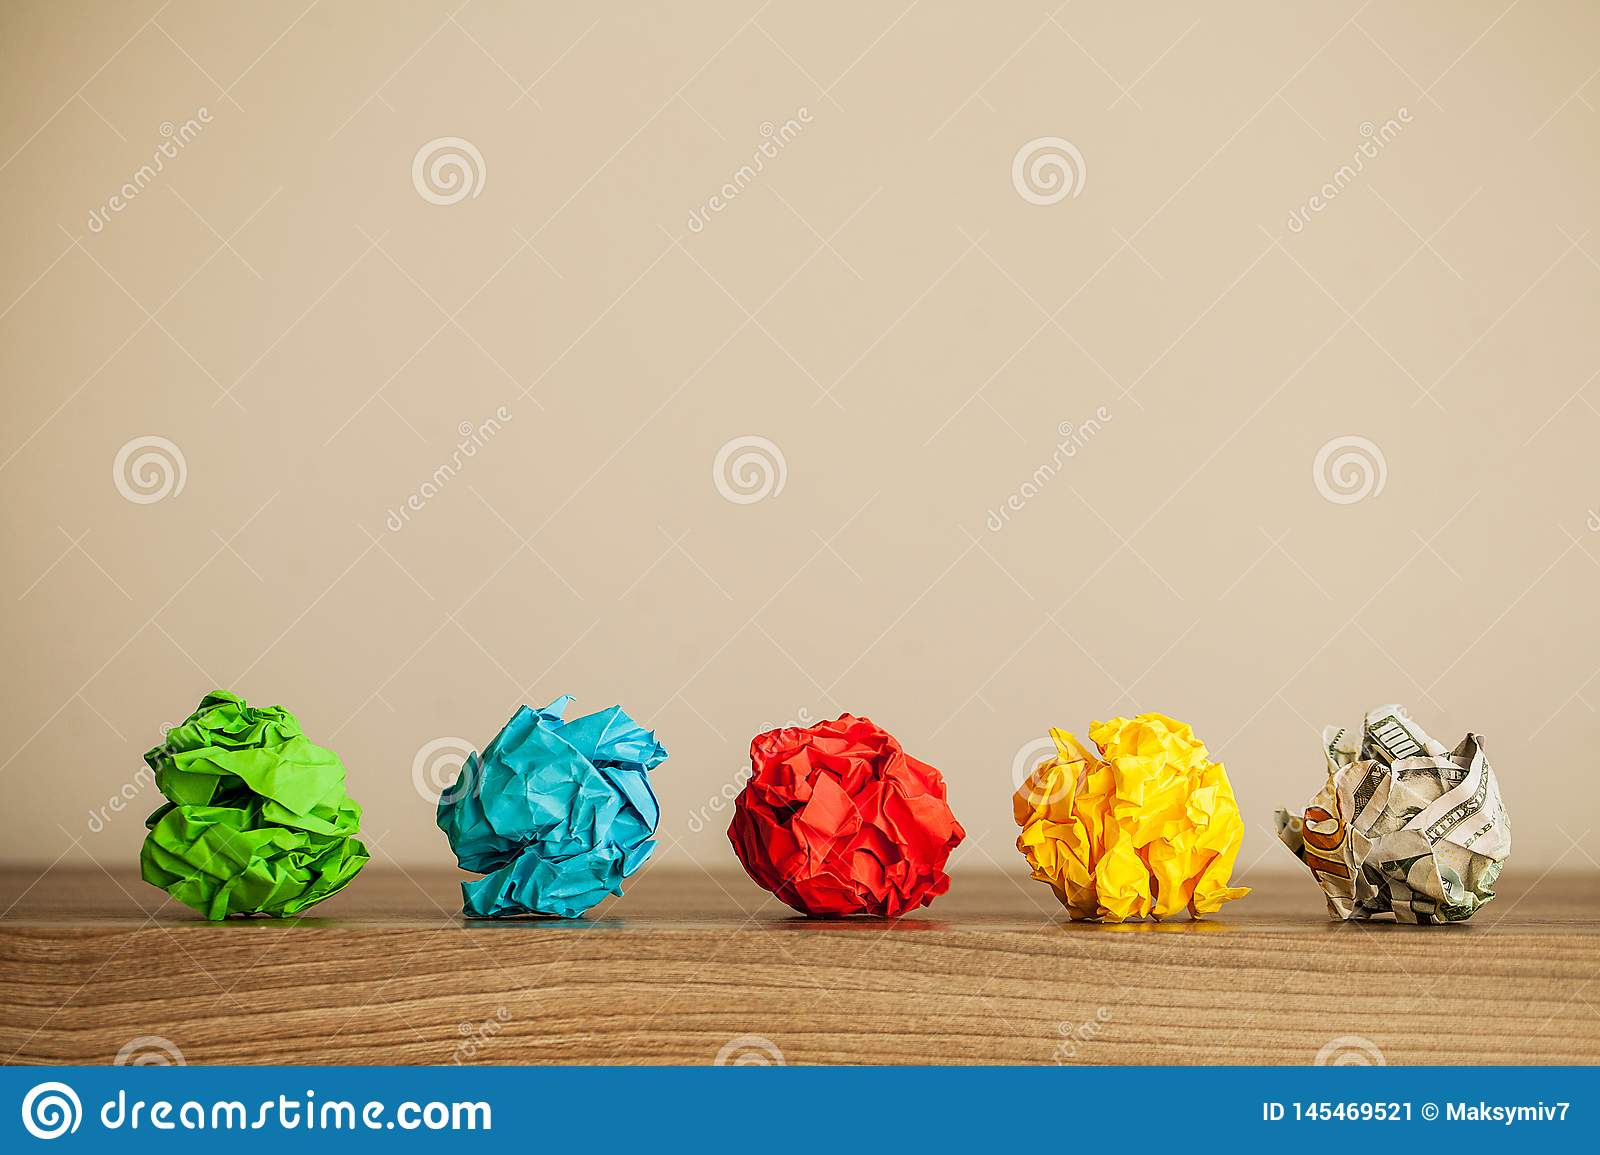 Great idea concept. Crumpled colorful paper on wooden table. Copy space